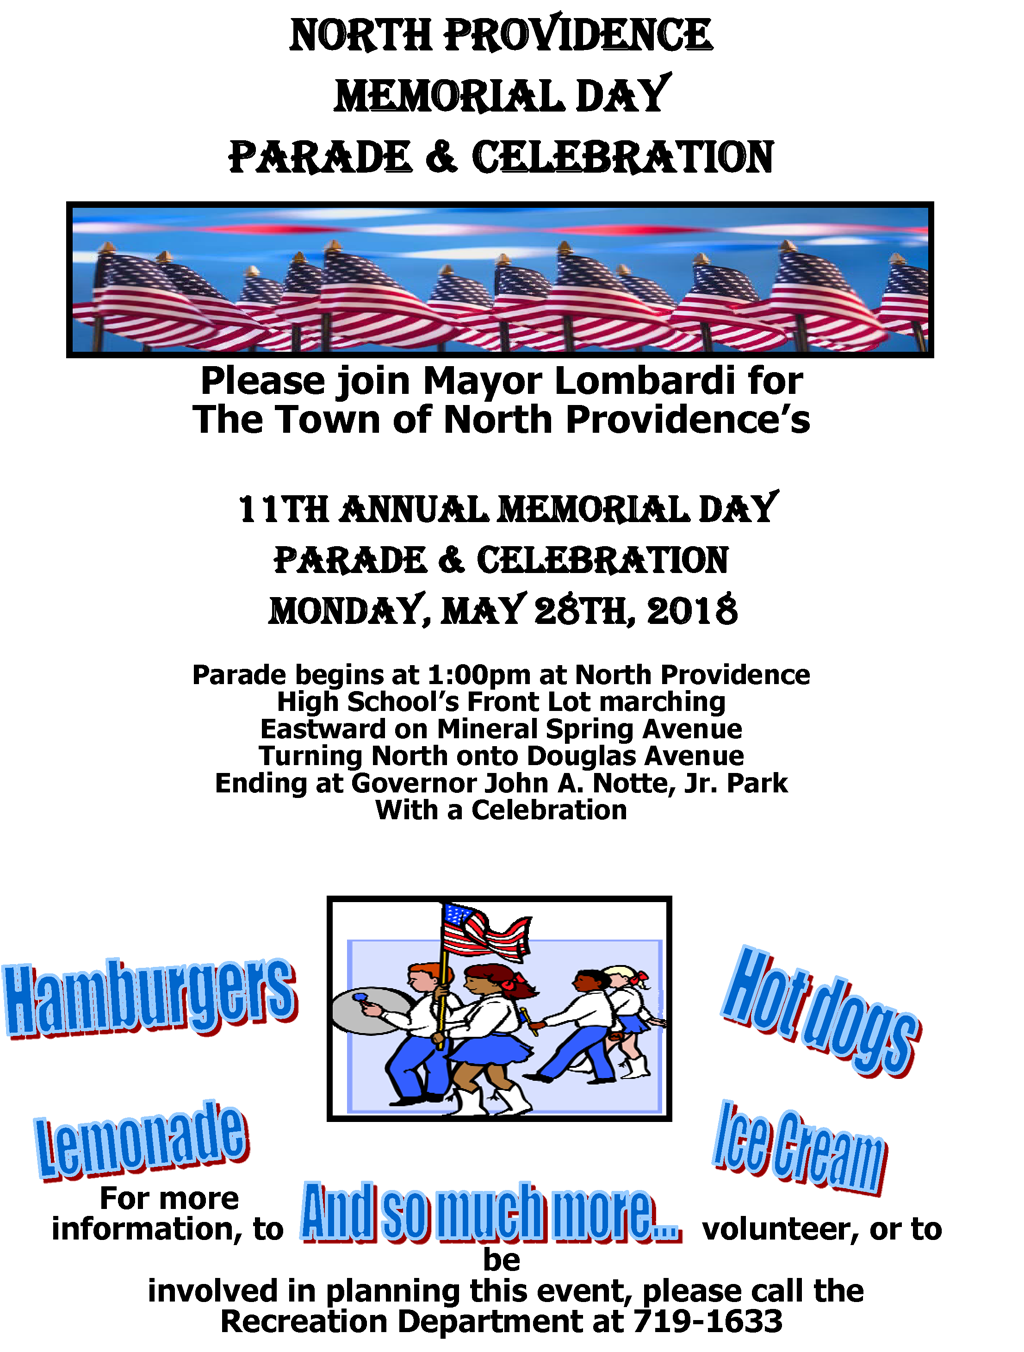 Memorial Day Parade Celebration Town of North Providence Rhode